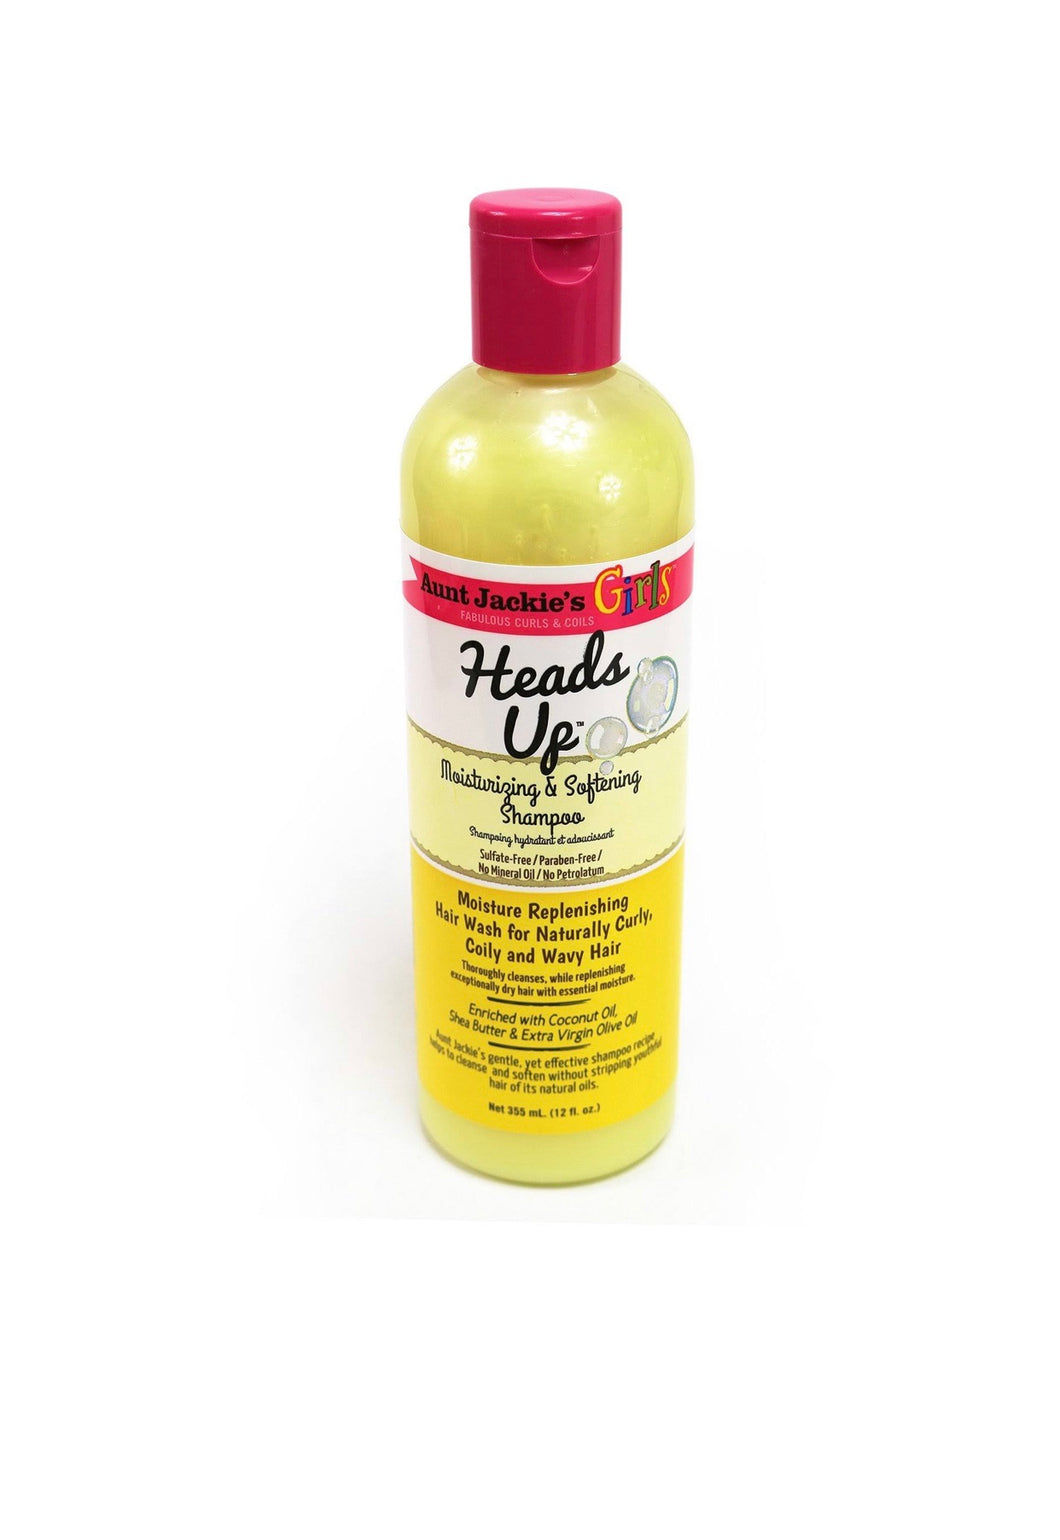 Aunt Jackie's Girls Heads Up Moisturizing Shampoo